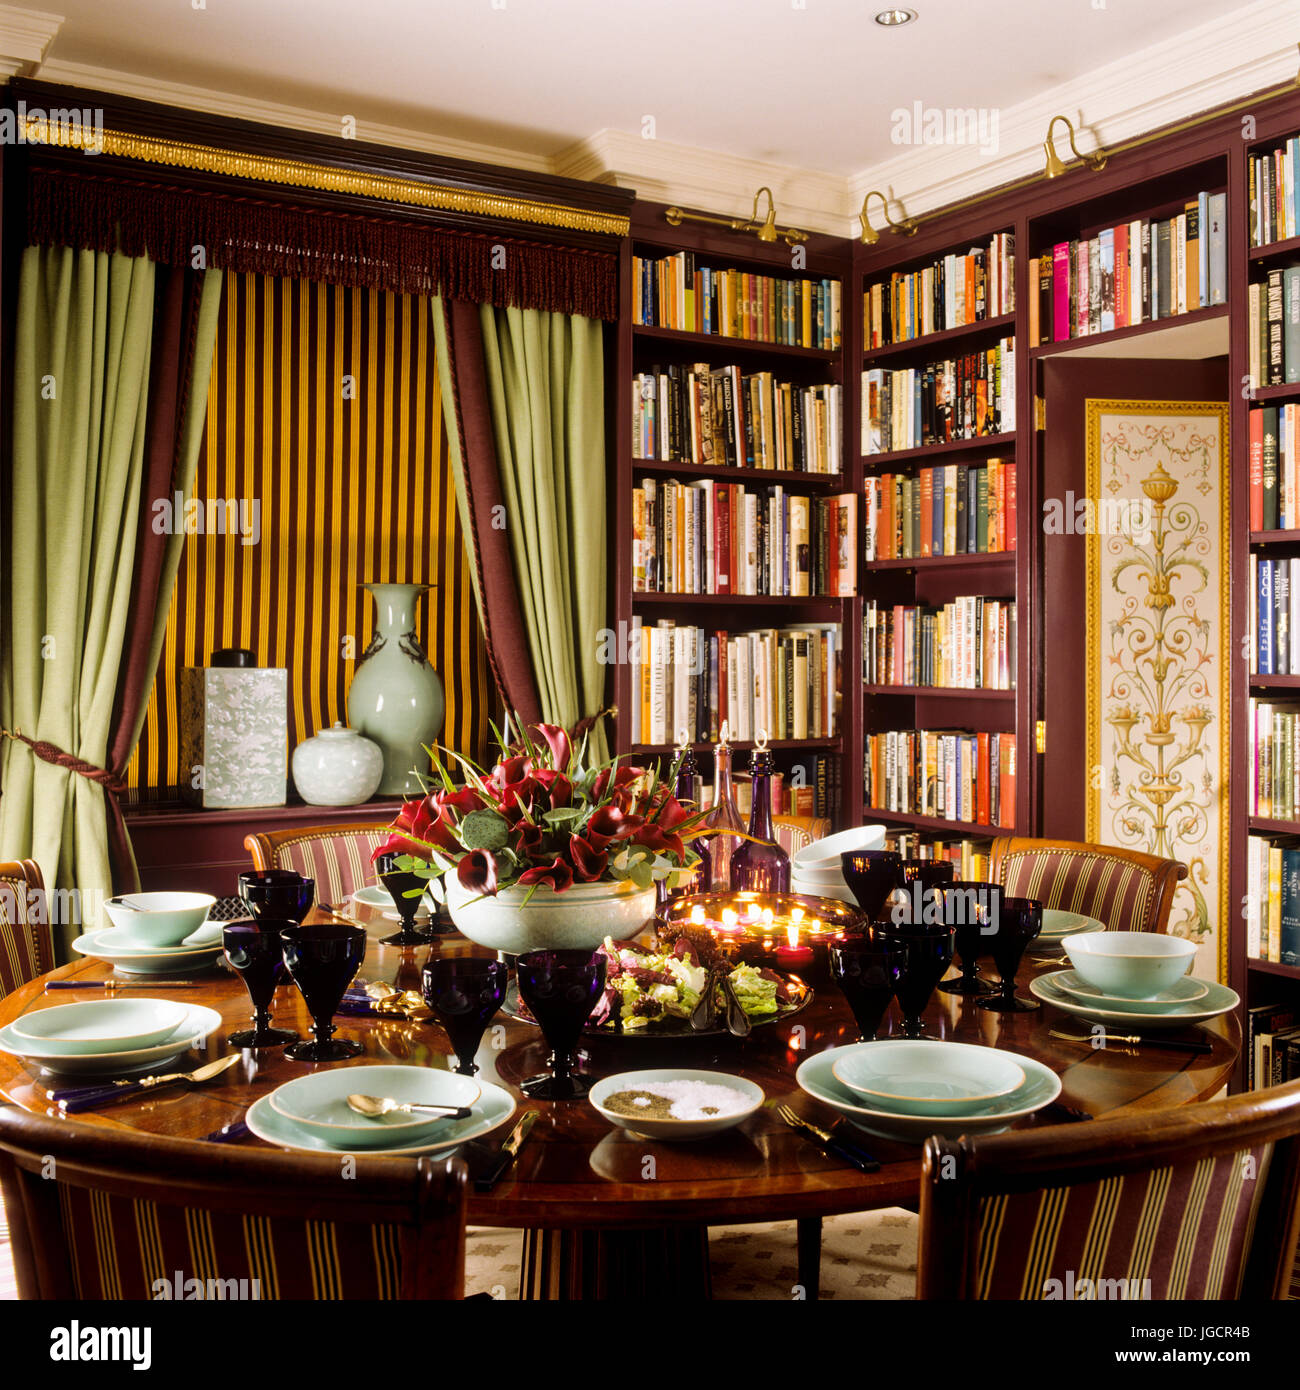 Victorian Dining Room: Victorian Dining Room Stock Photos & Victorian Dining Room